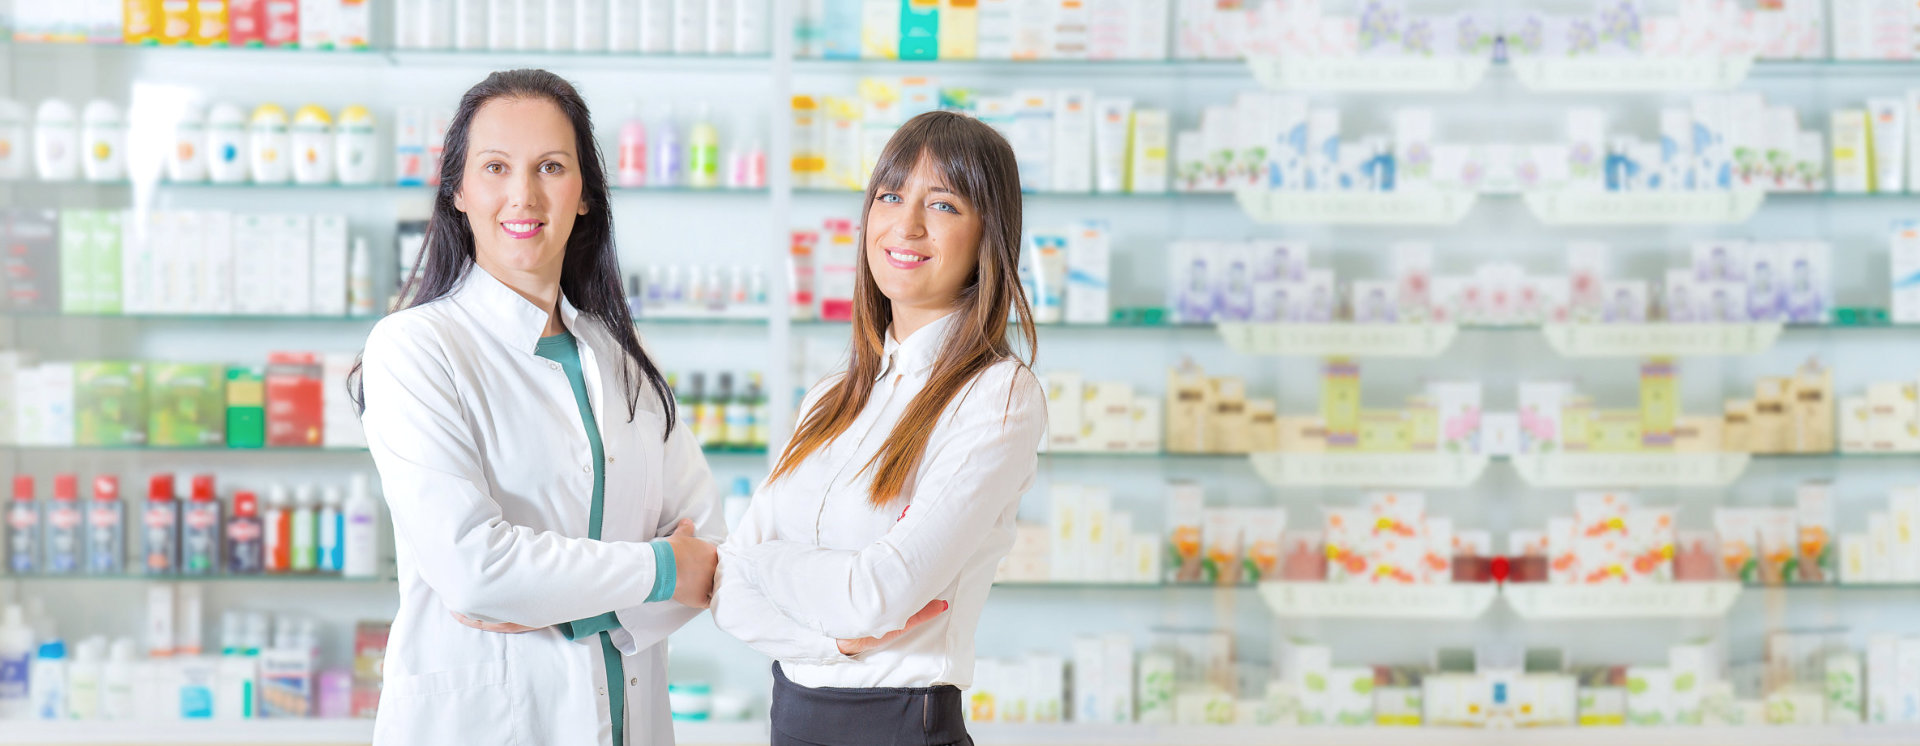 photo of women pharmacists with pharmacy products on background